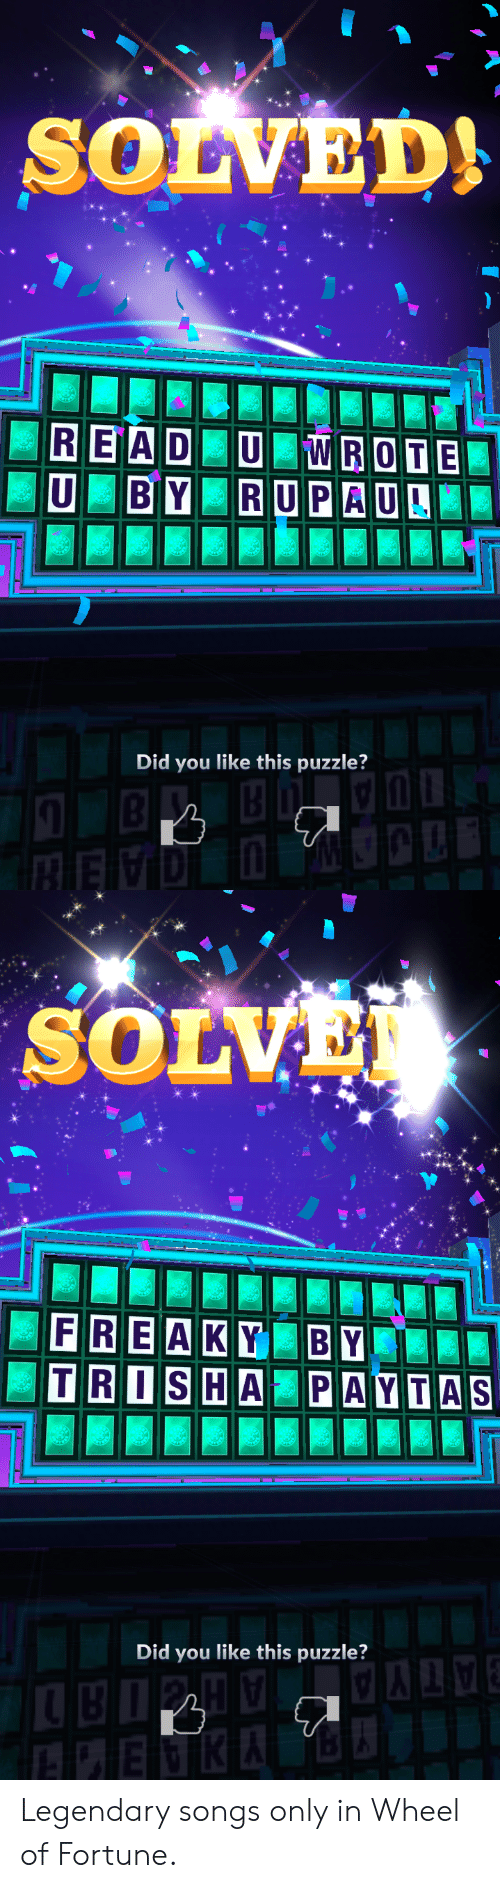 wheel of fortune: SOLVED!  Did you like this puzzle?   FRE AKYBY  Did you like this puzzle? Legendary songs only in Wheel of Fortune.